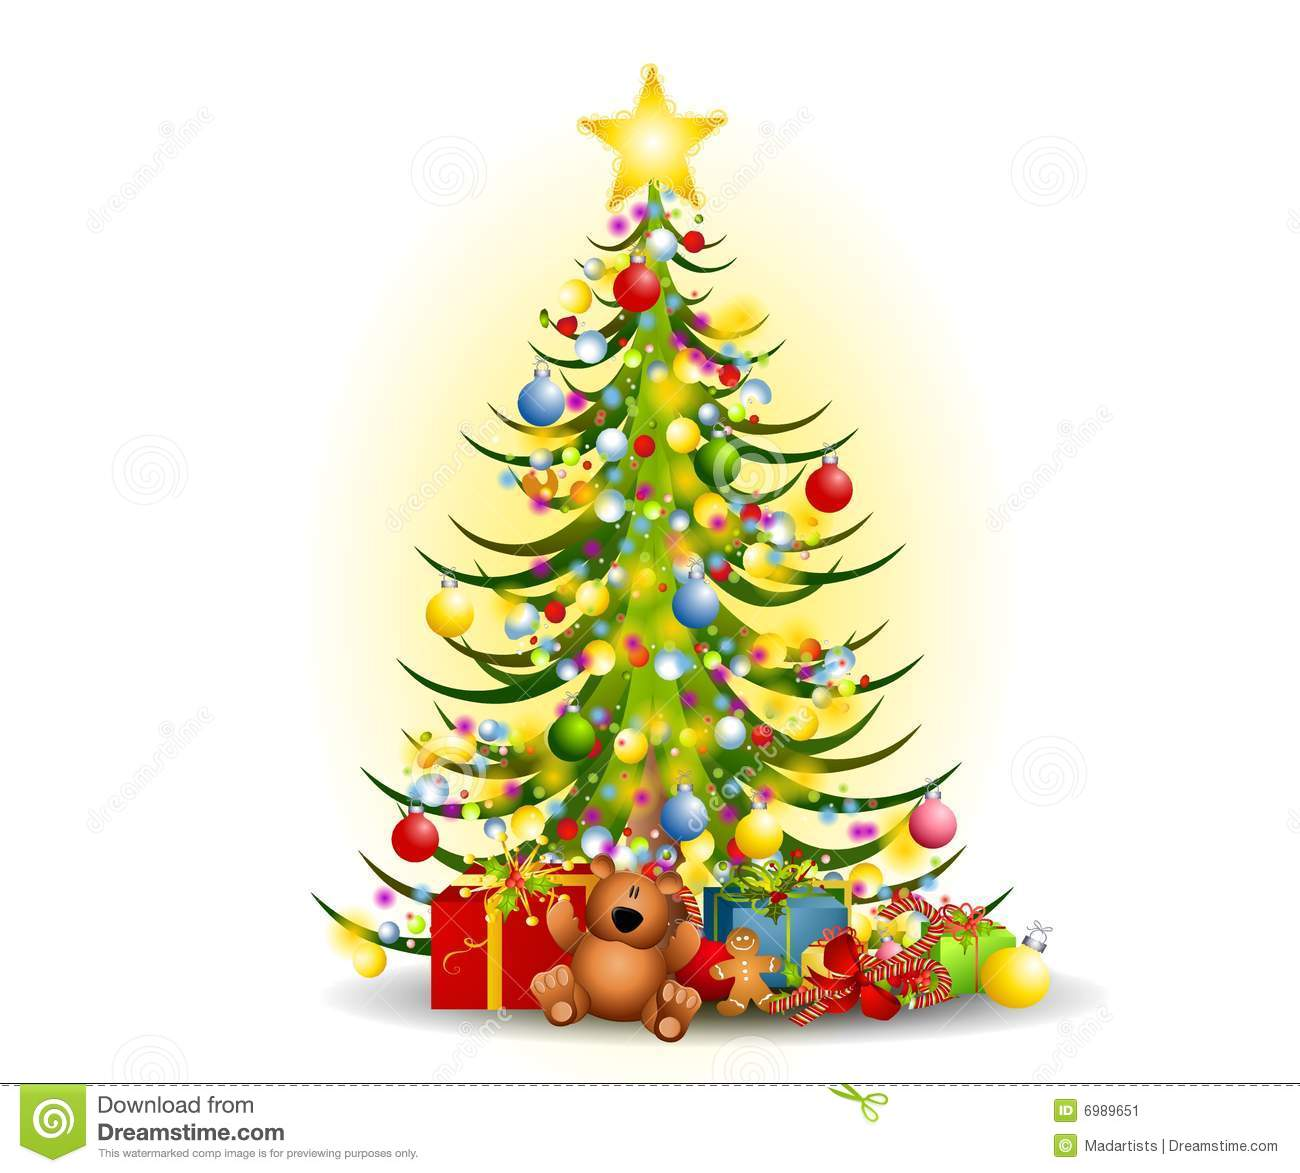 Christmas Tree Art.Christmas Tree Gifts Clip Art Stock Illustration